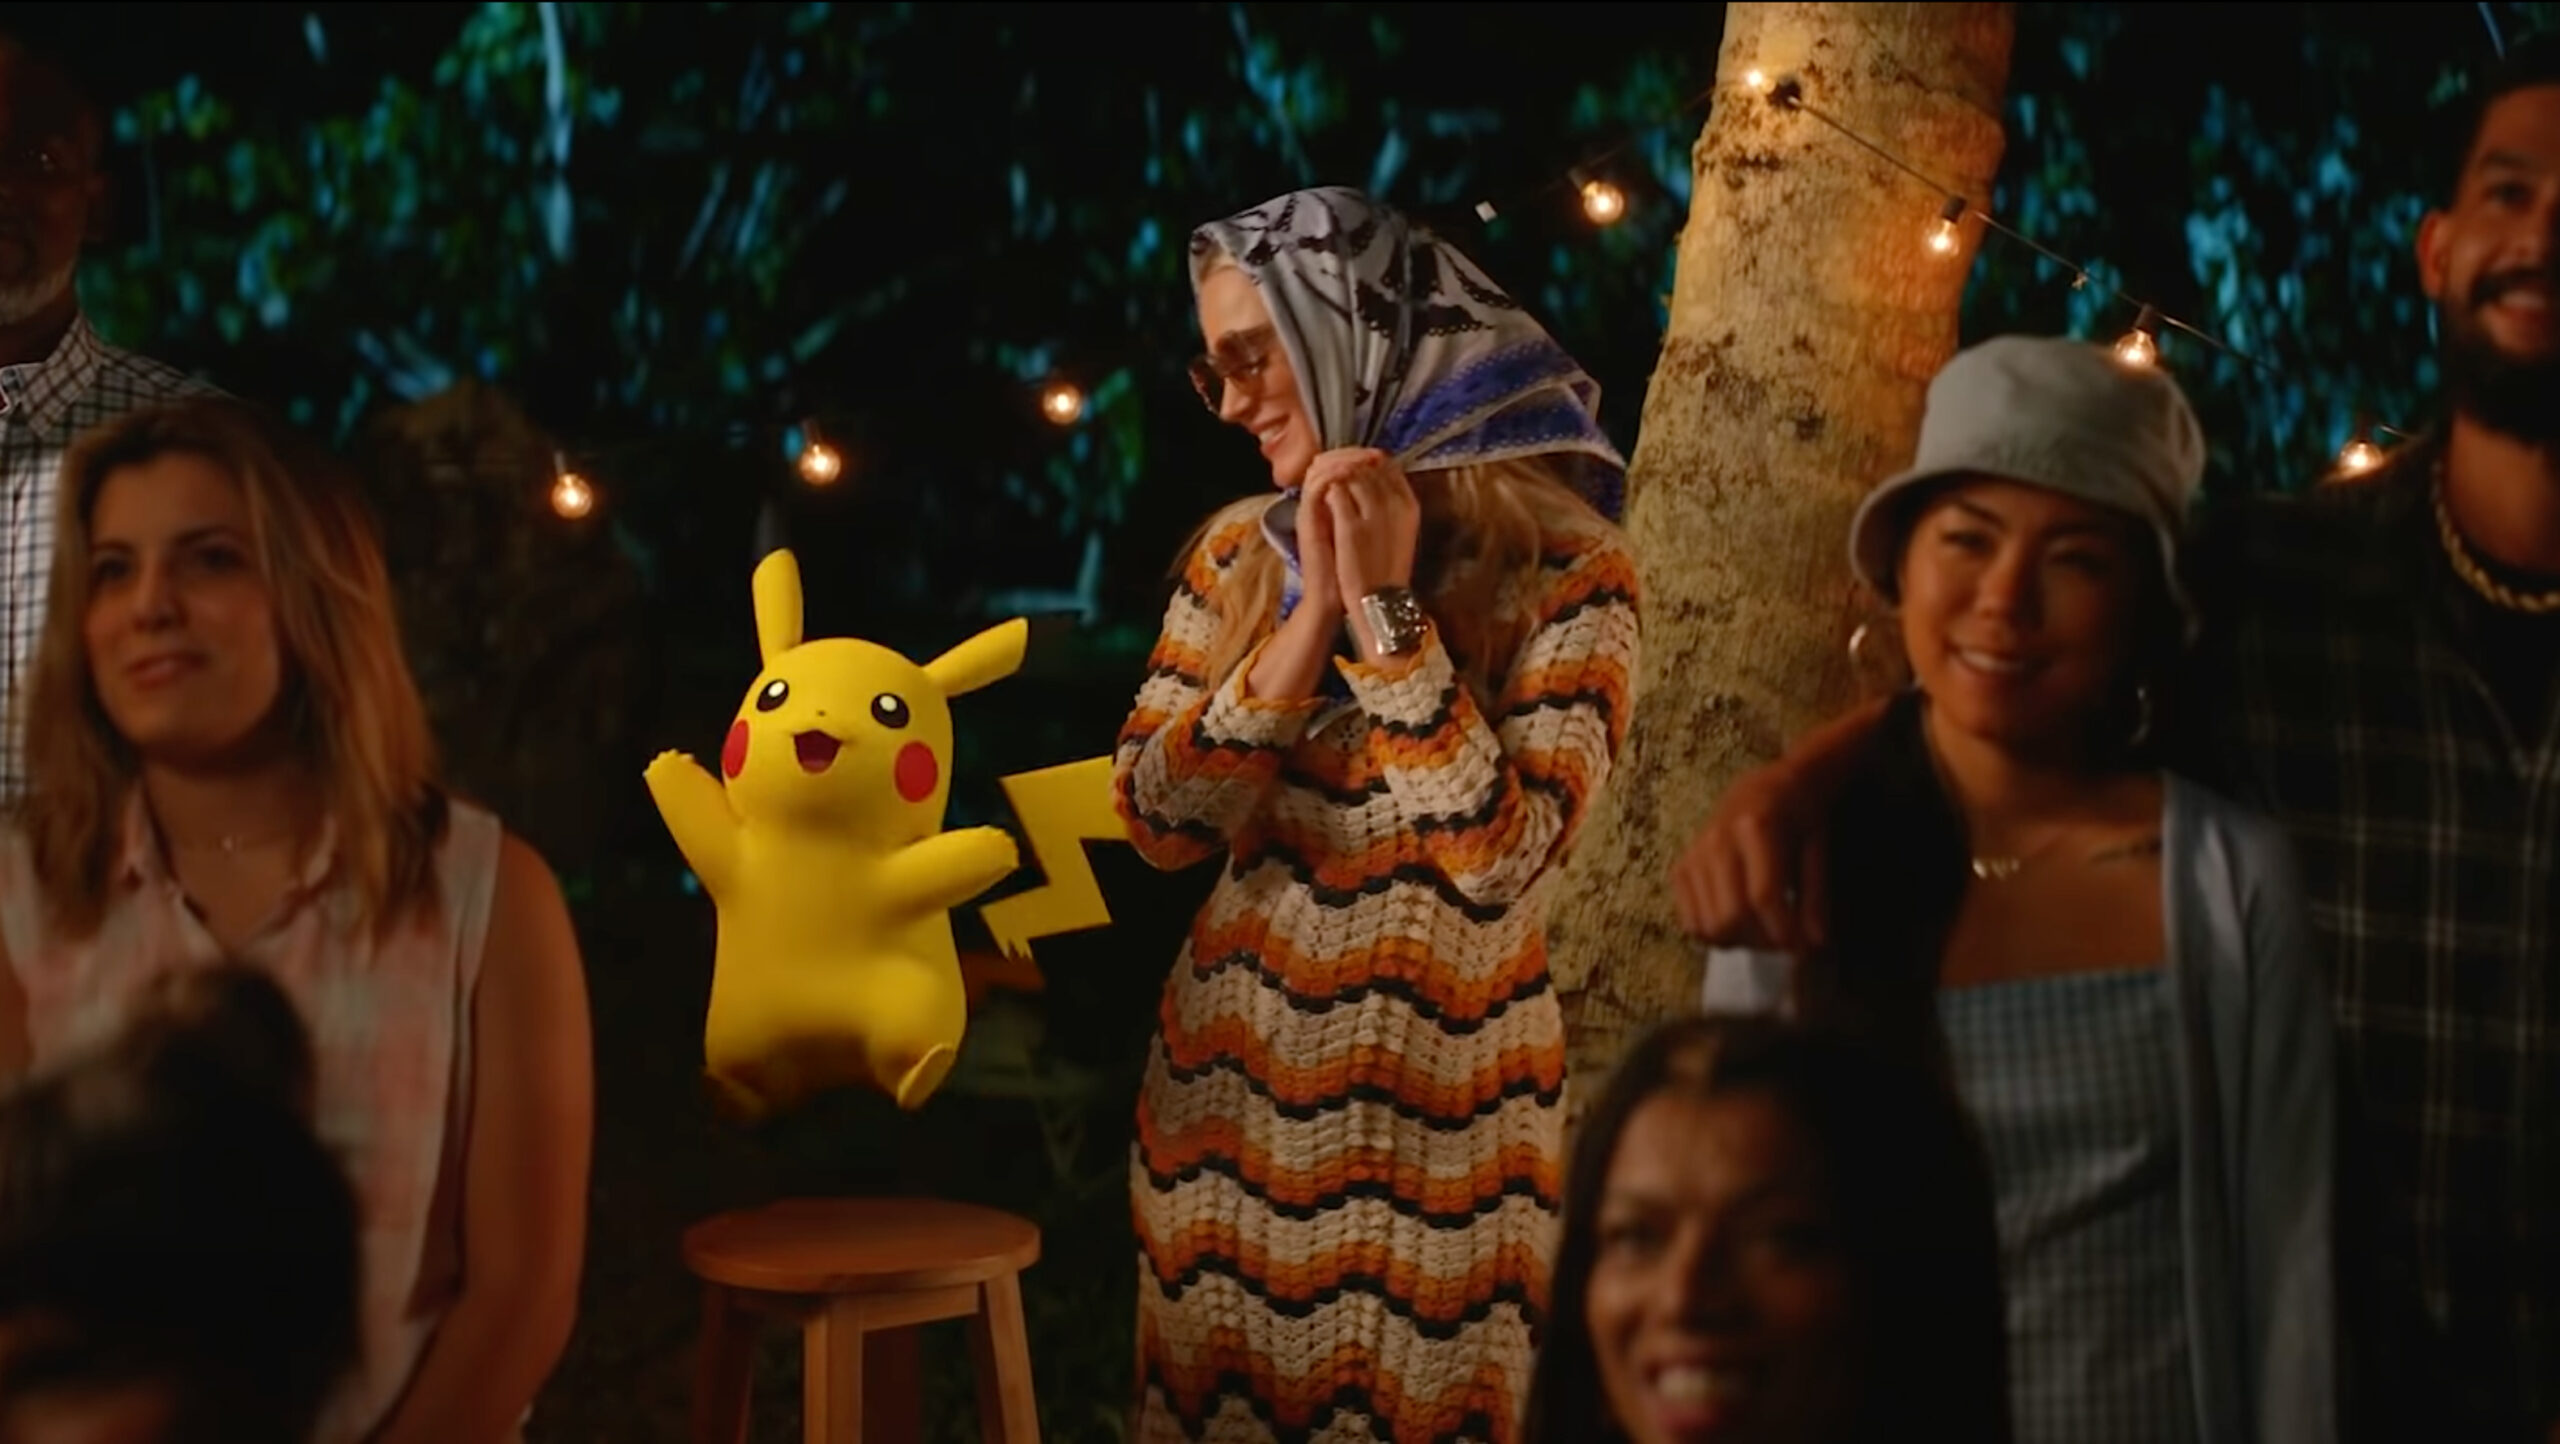 Pikachu with Katy Perry wearing a disguise